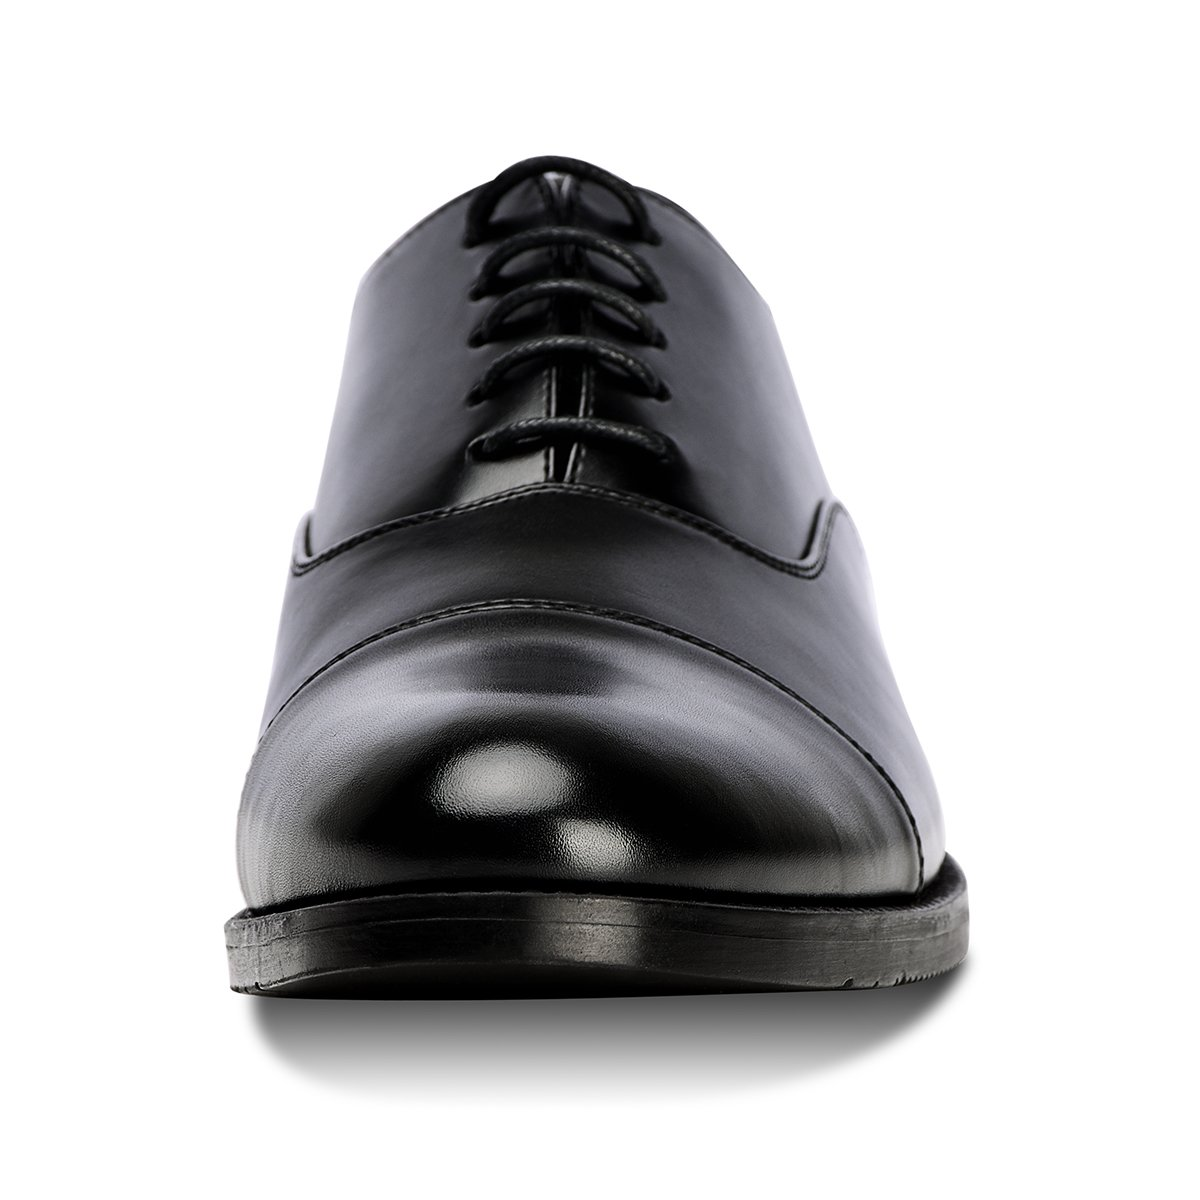 Men's Dress Shoes FormalLeather Oxfords Lace up Black 10.5 by GOLAIMAN (Image #4)